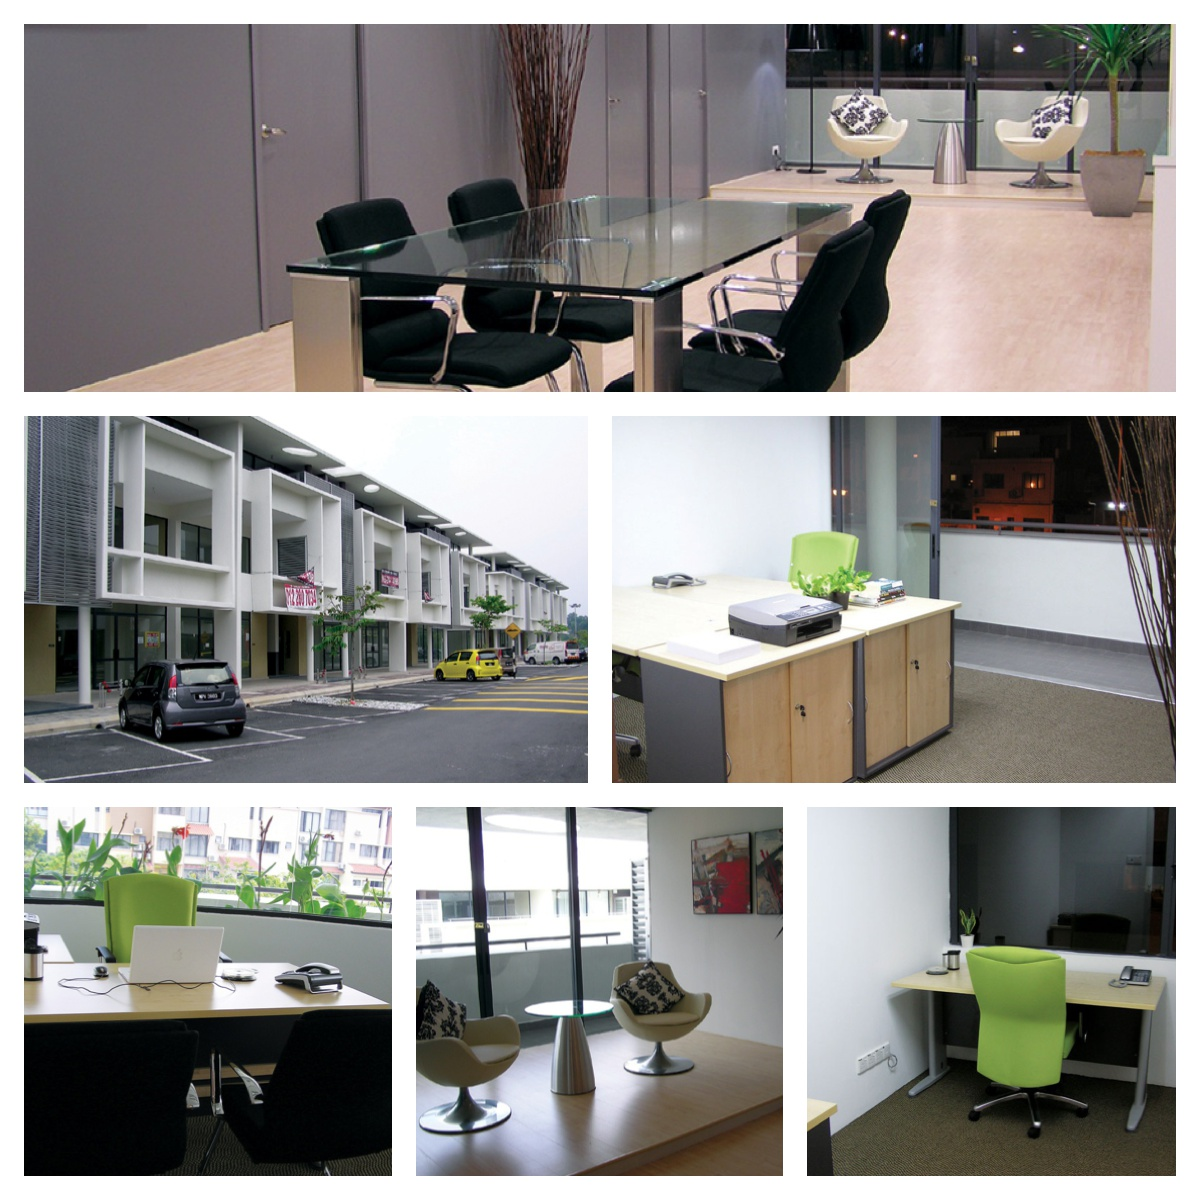 Office space for rent near me the boutique office kuala lumpur small office shared office - Shared office space for rent ...